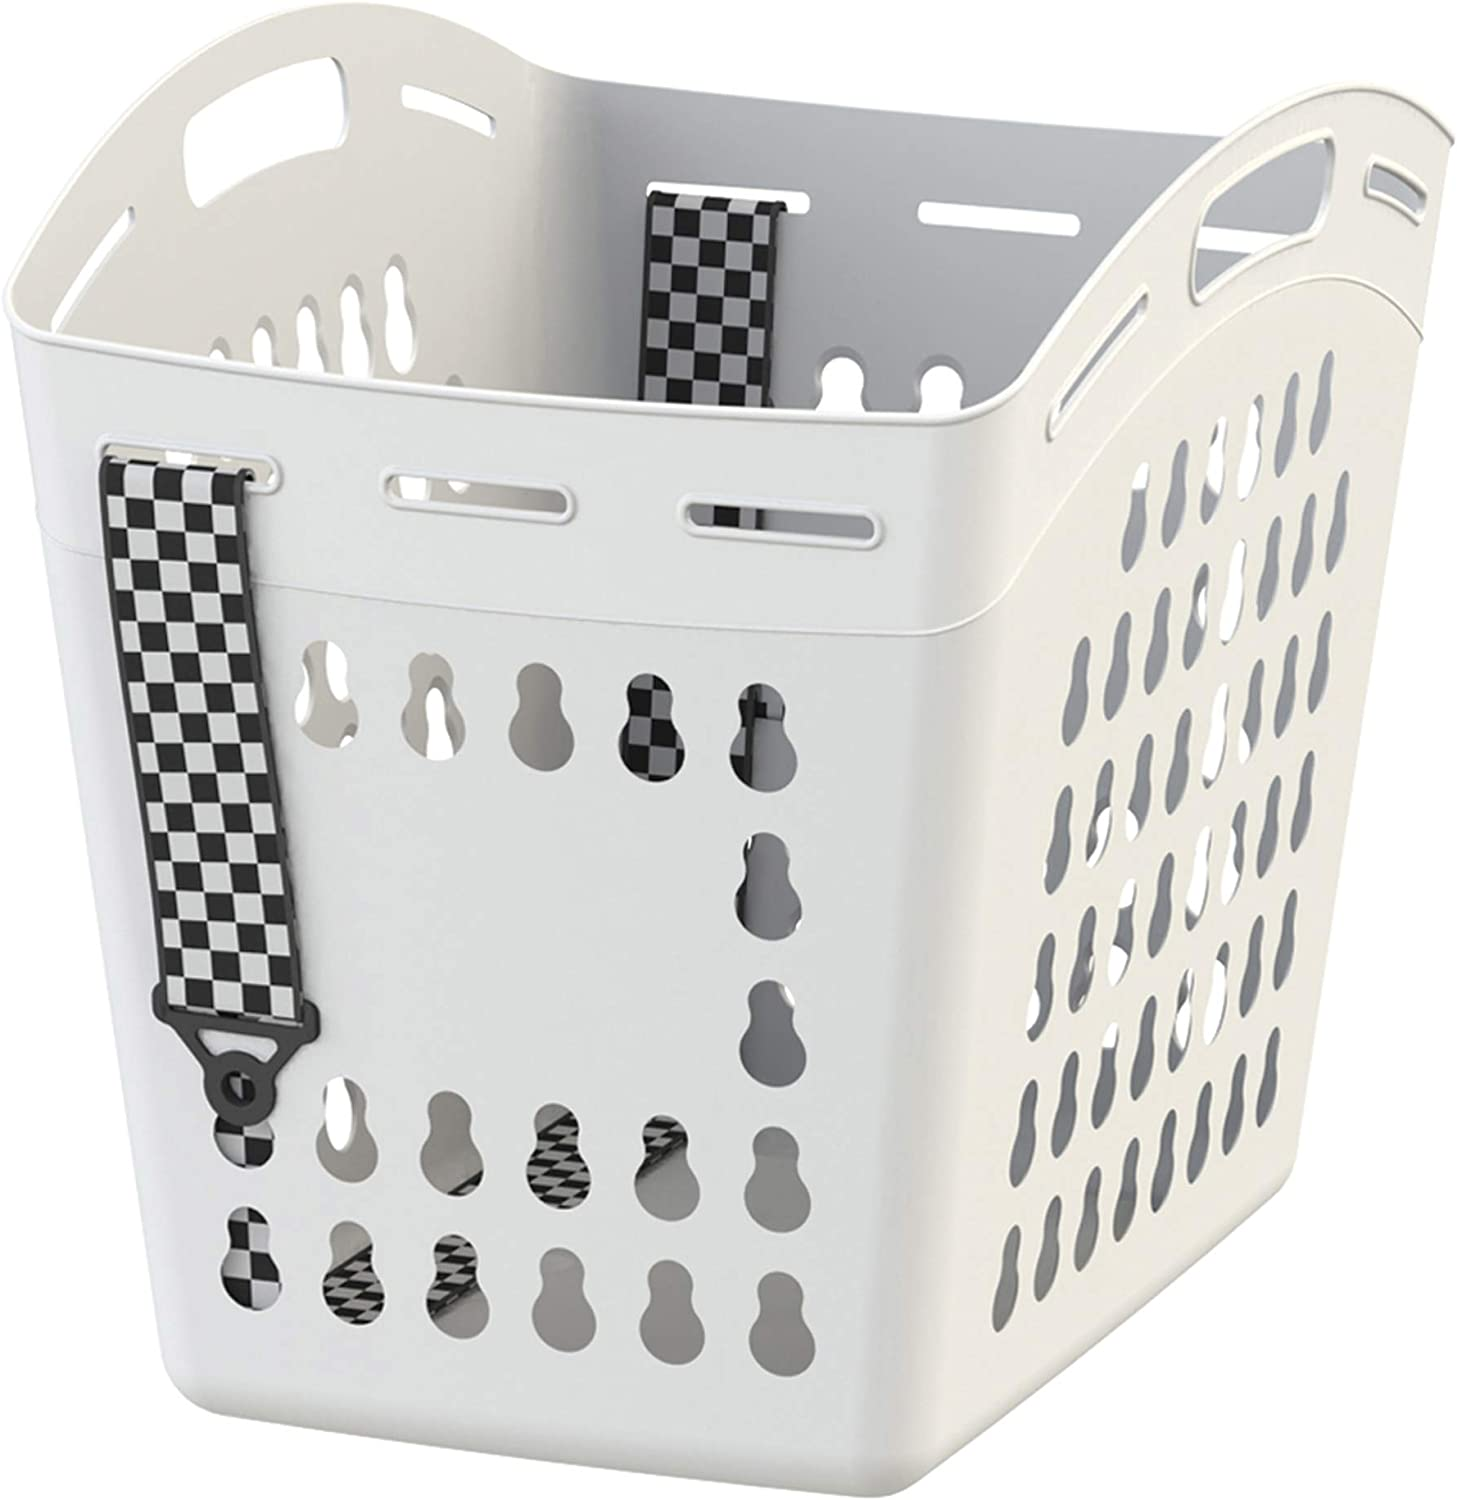 United Solutions Hands Free Laundry Tote With Adjustable and Removable Strap, Easy to Carry, Lightweight, Pack of 3, White